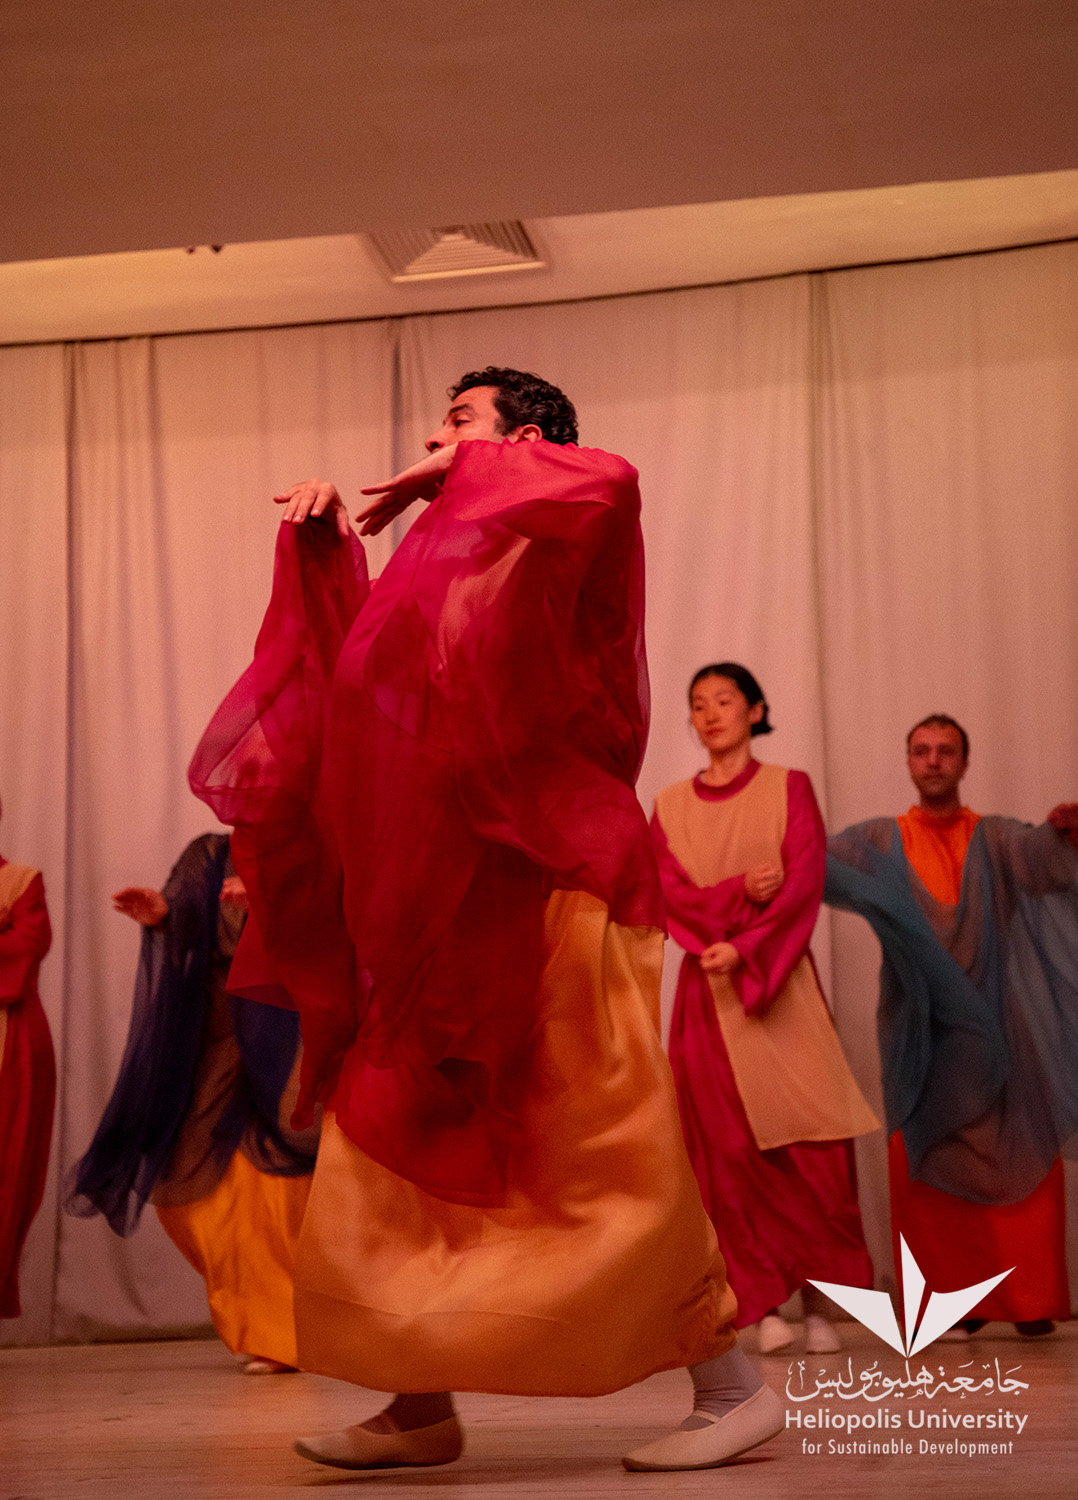 Moonlight-Eurythmy-Space of Culture14